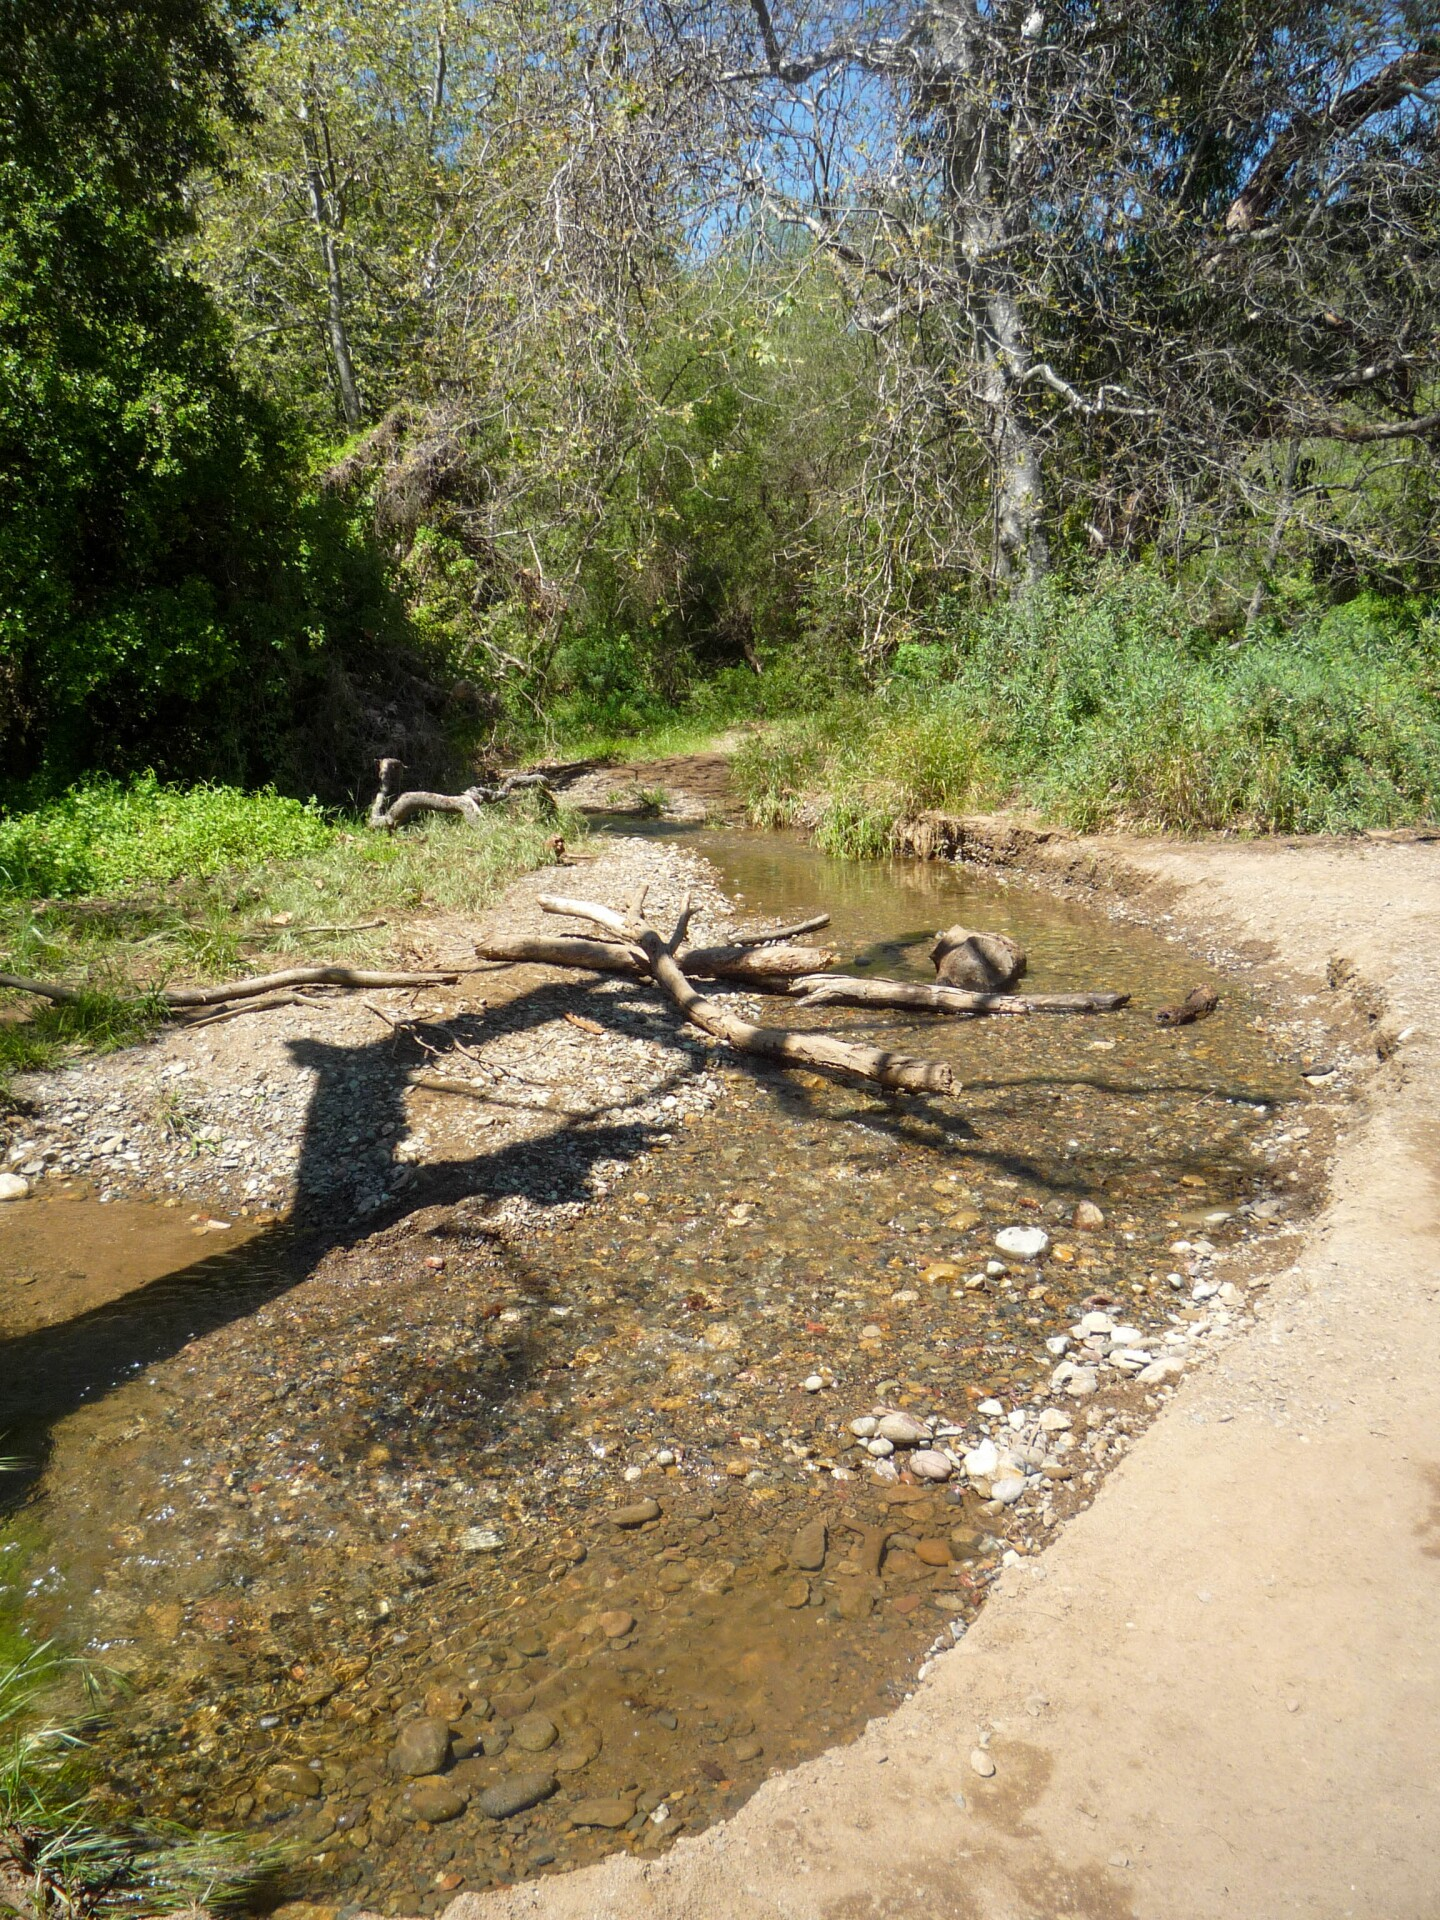 A trickling creek before along the trail before arriving at the Temescal waterfall.